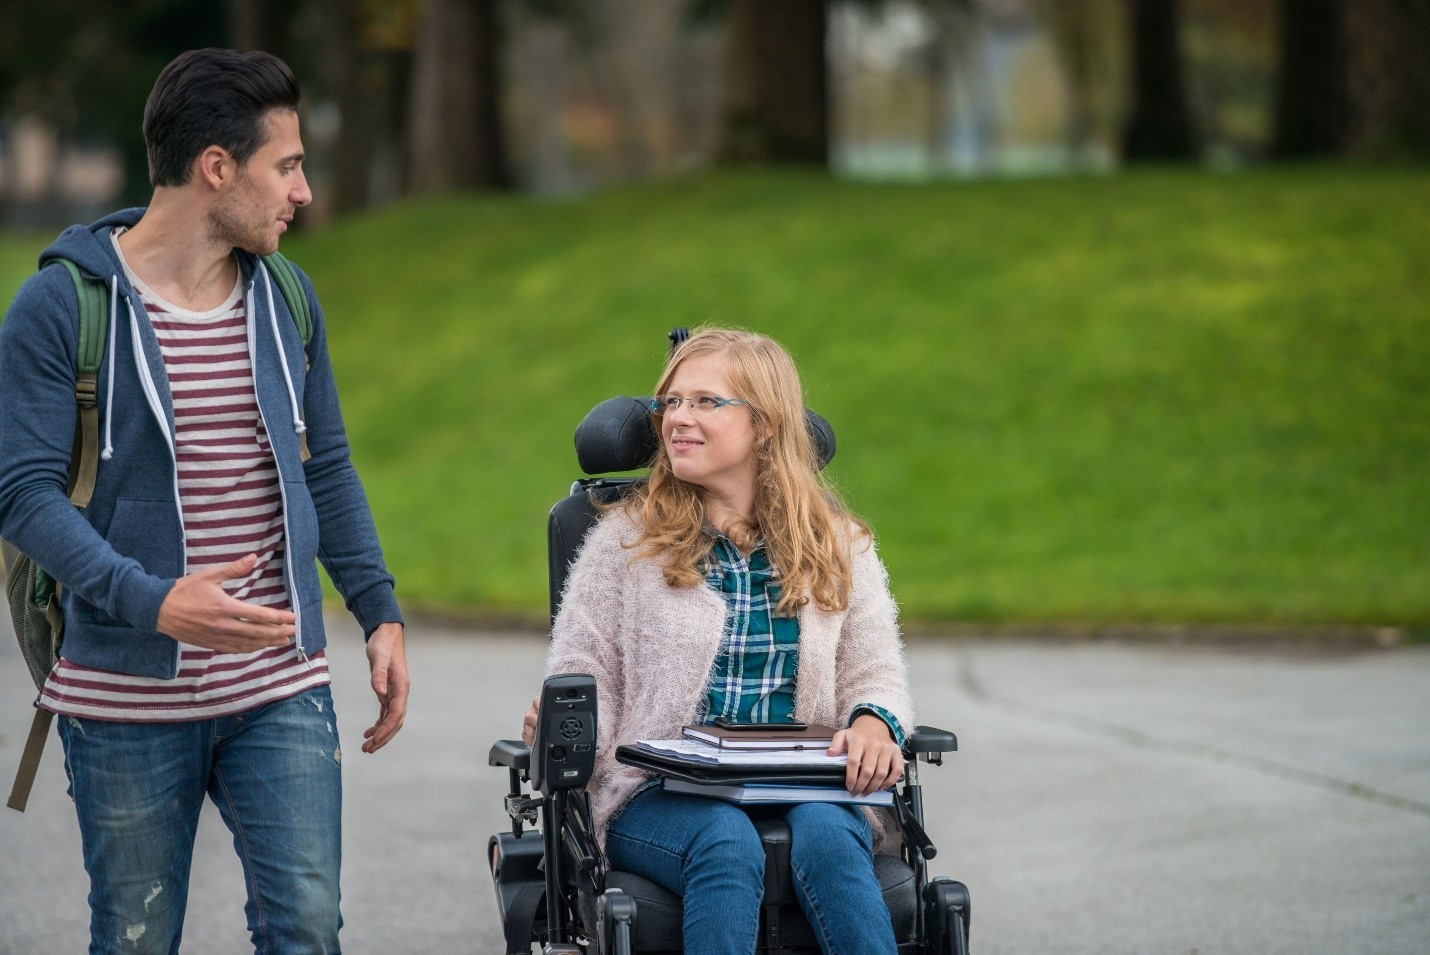 woman in wheelchair holding books next to man walking with backpack